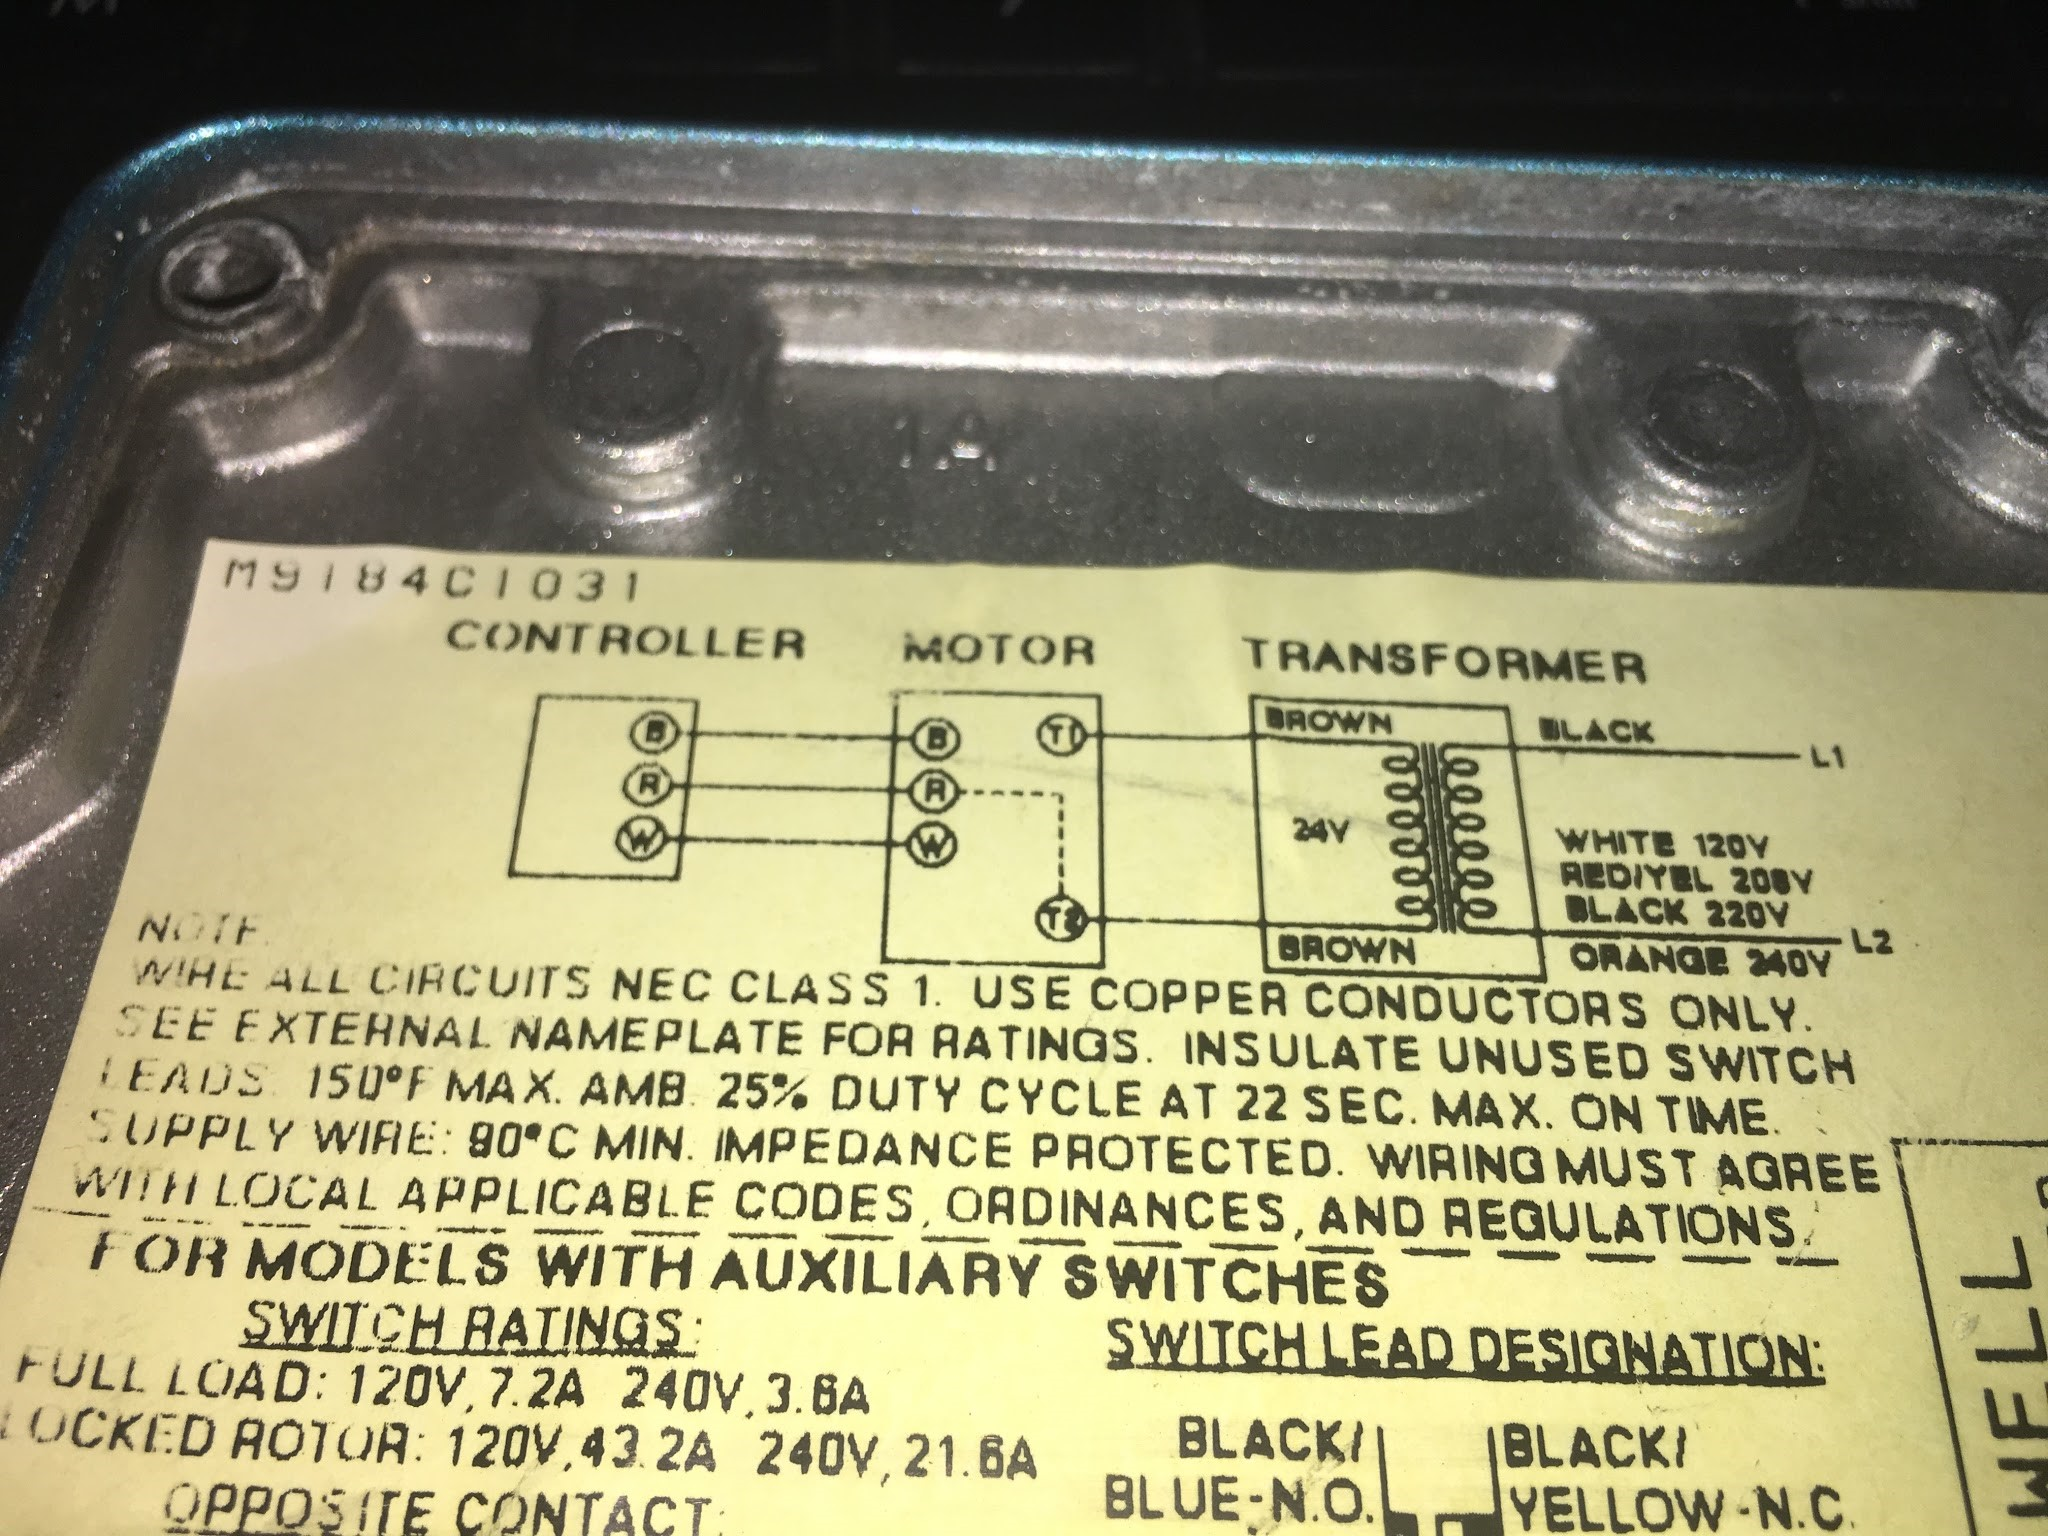 honeywell modutrol wiring diagram wiring library rh 77 codingcommunity de temperature controller wiring diagram the 24v style motors are often supplied with a transformer inside of the motor housing,